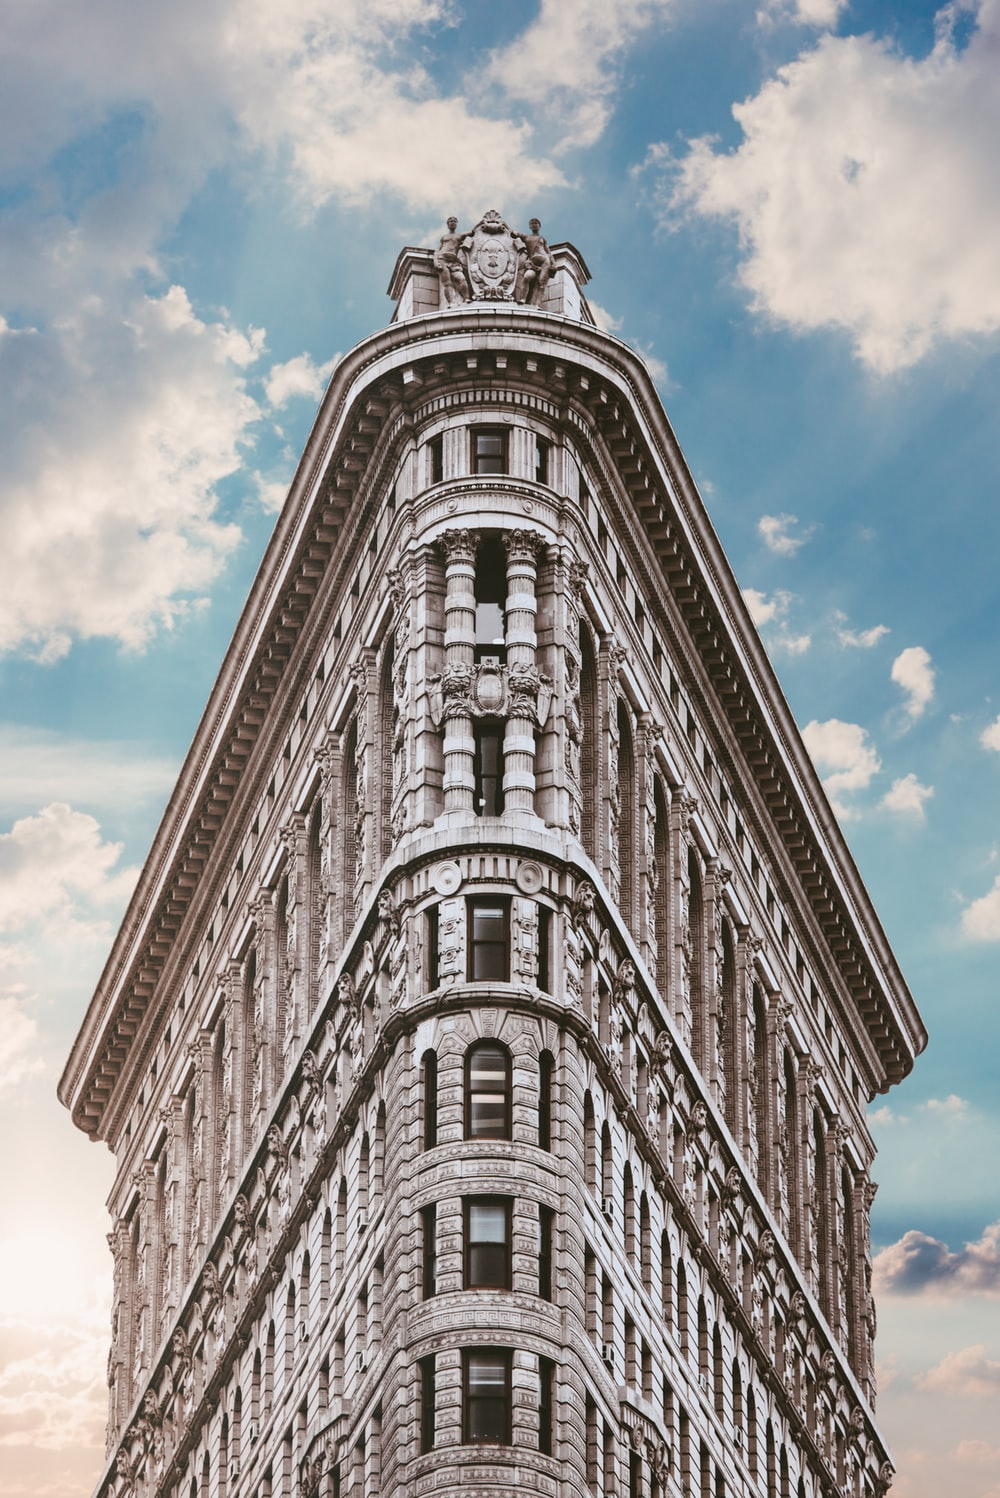 500 Flatiron Building Pictures Download Free Images On